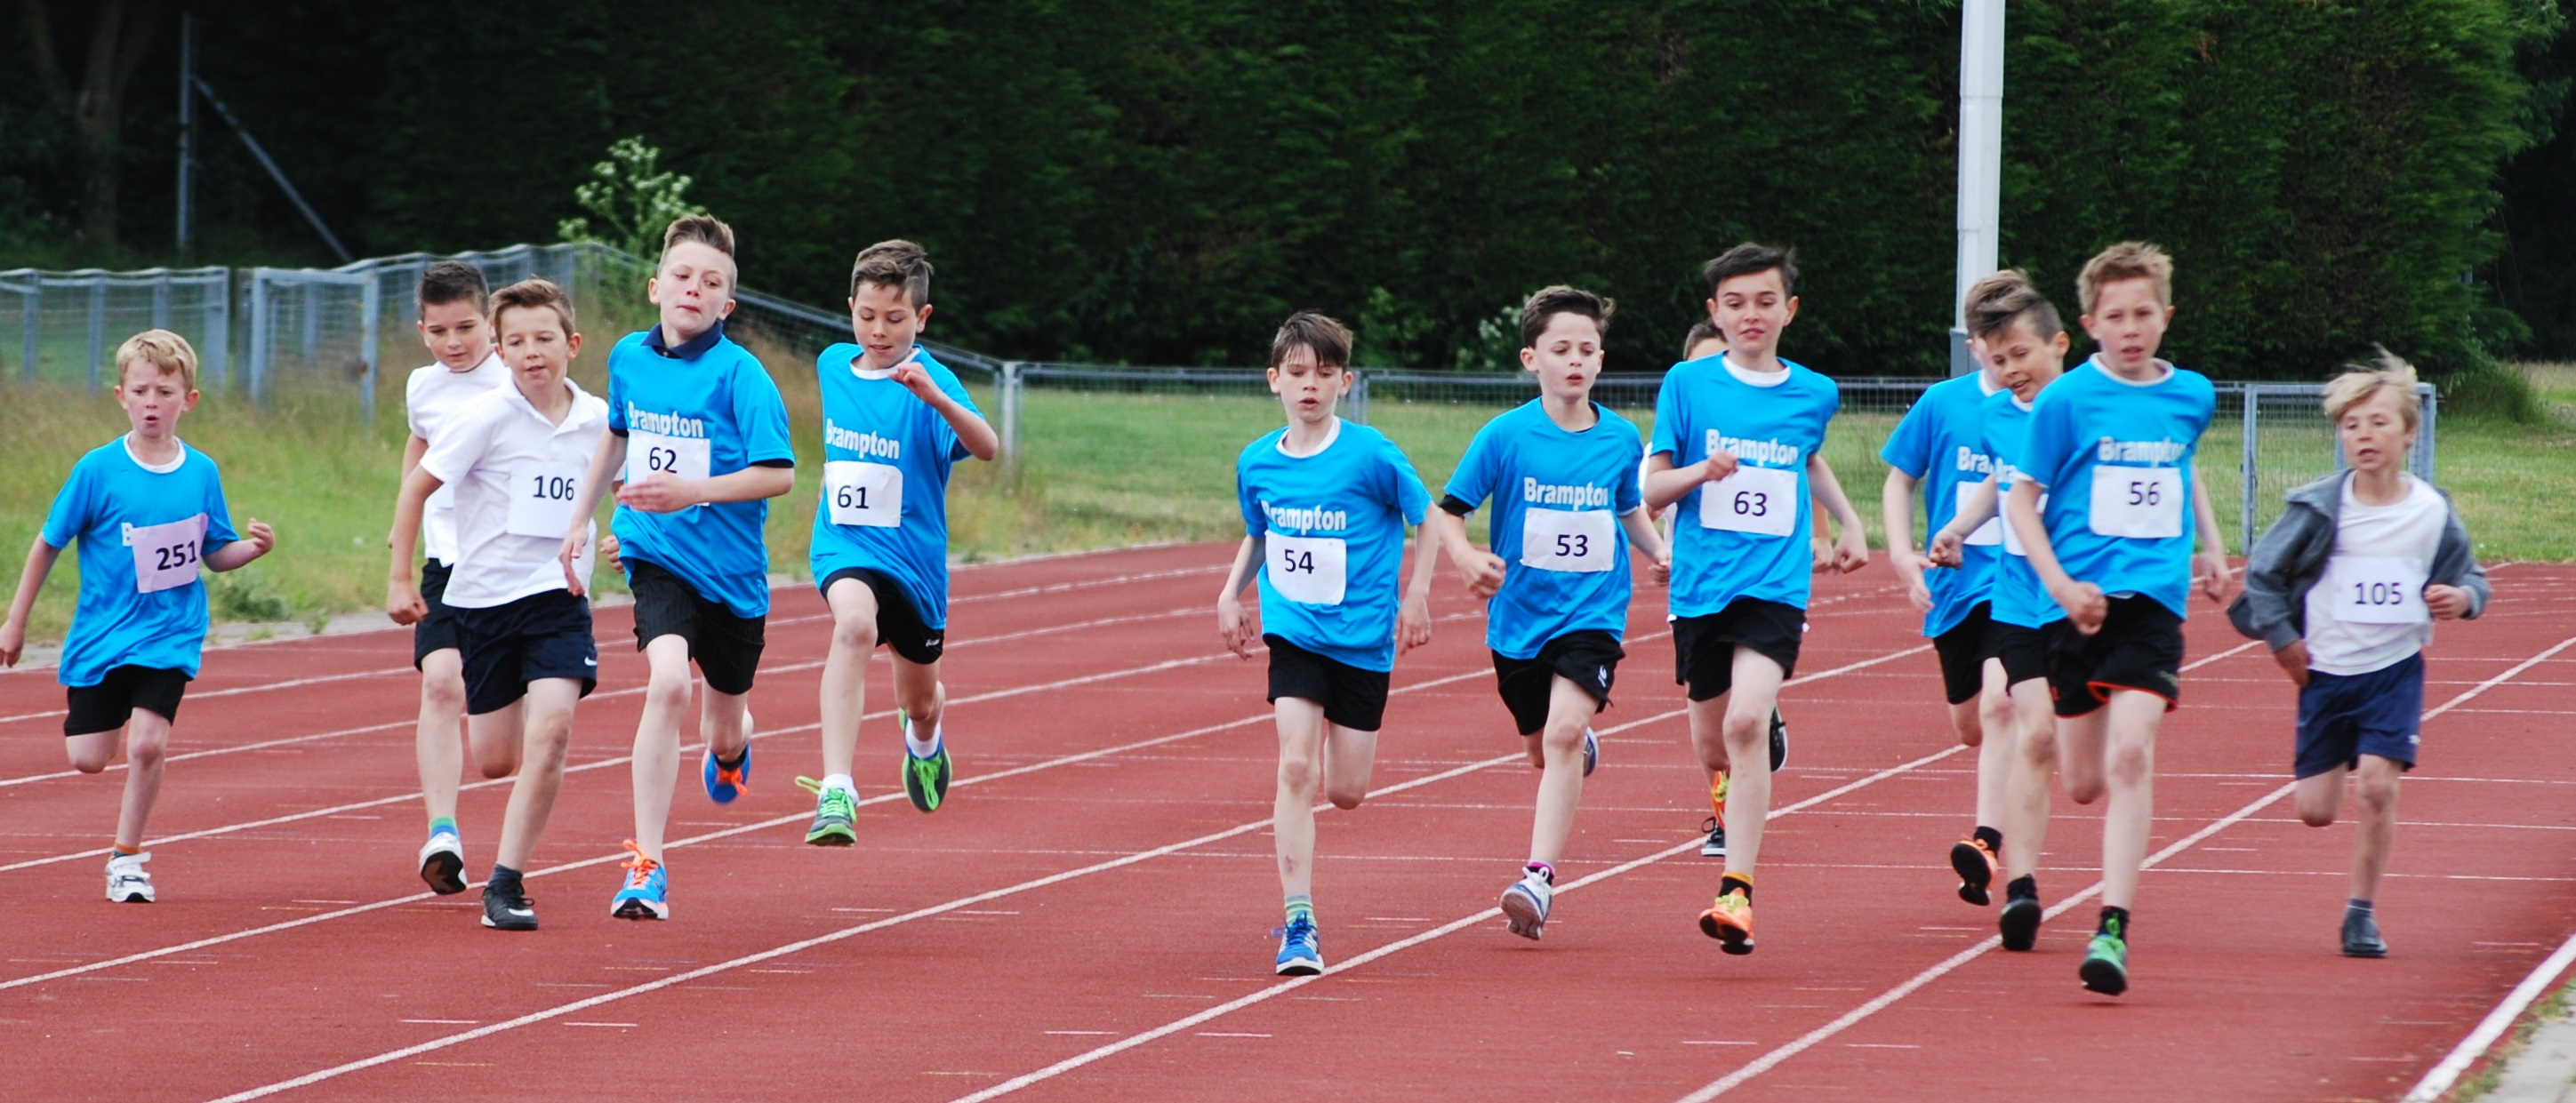 Level 2 Quadkids Athletics – 9 June 2015 | Hunts School ...